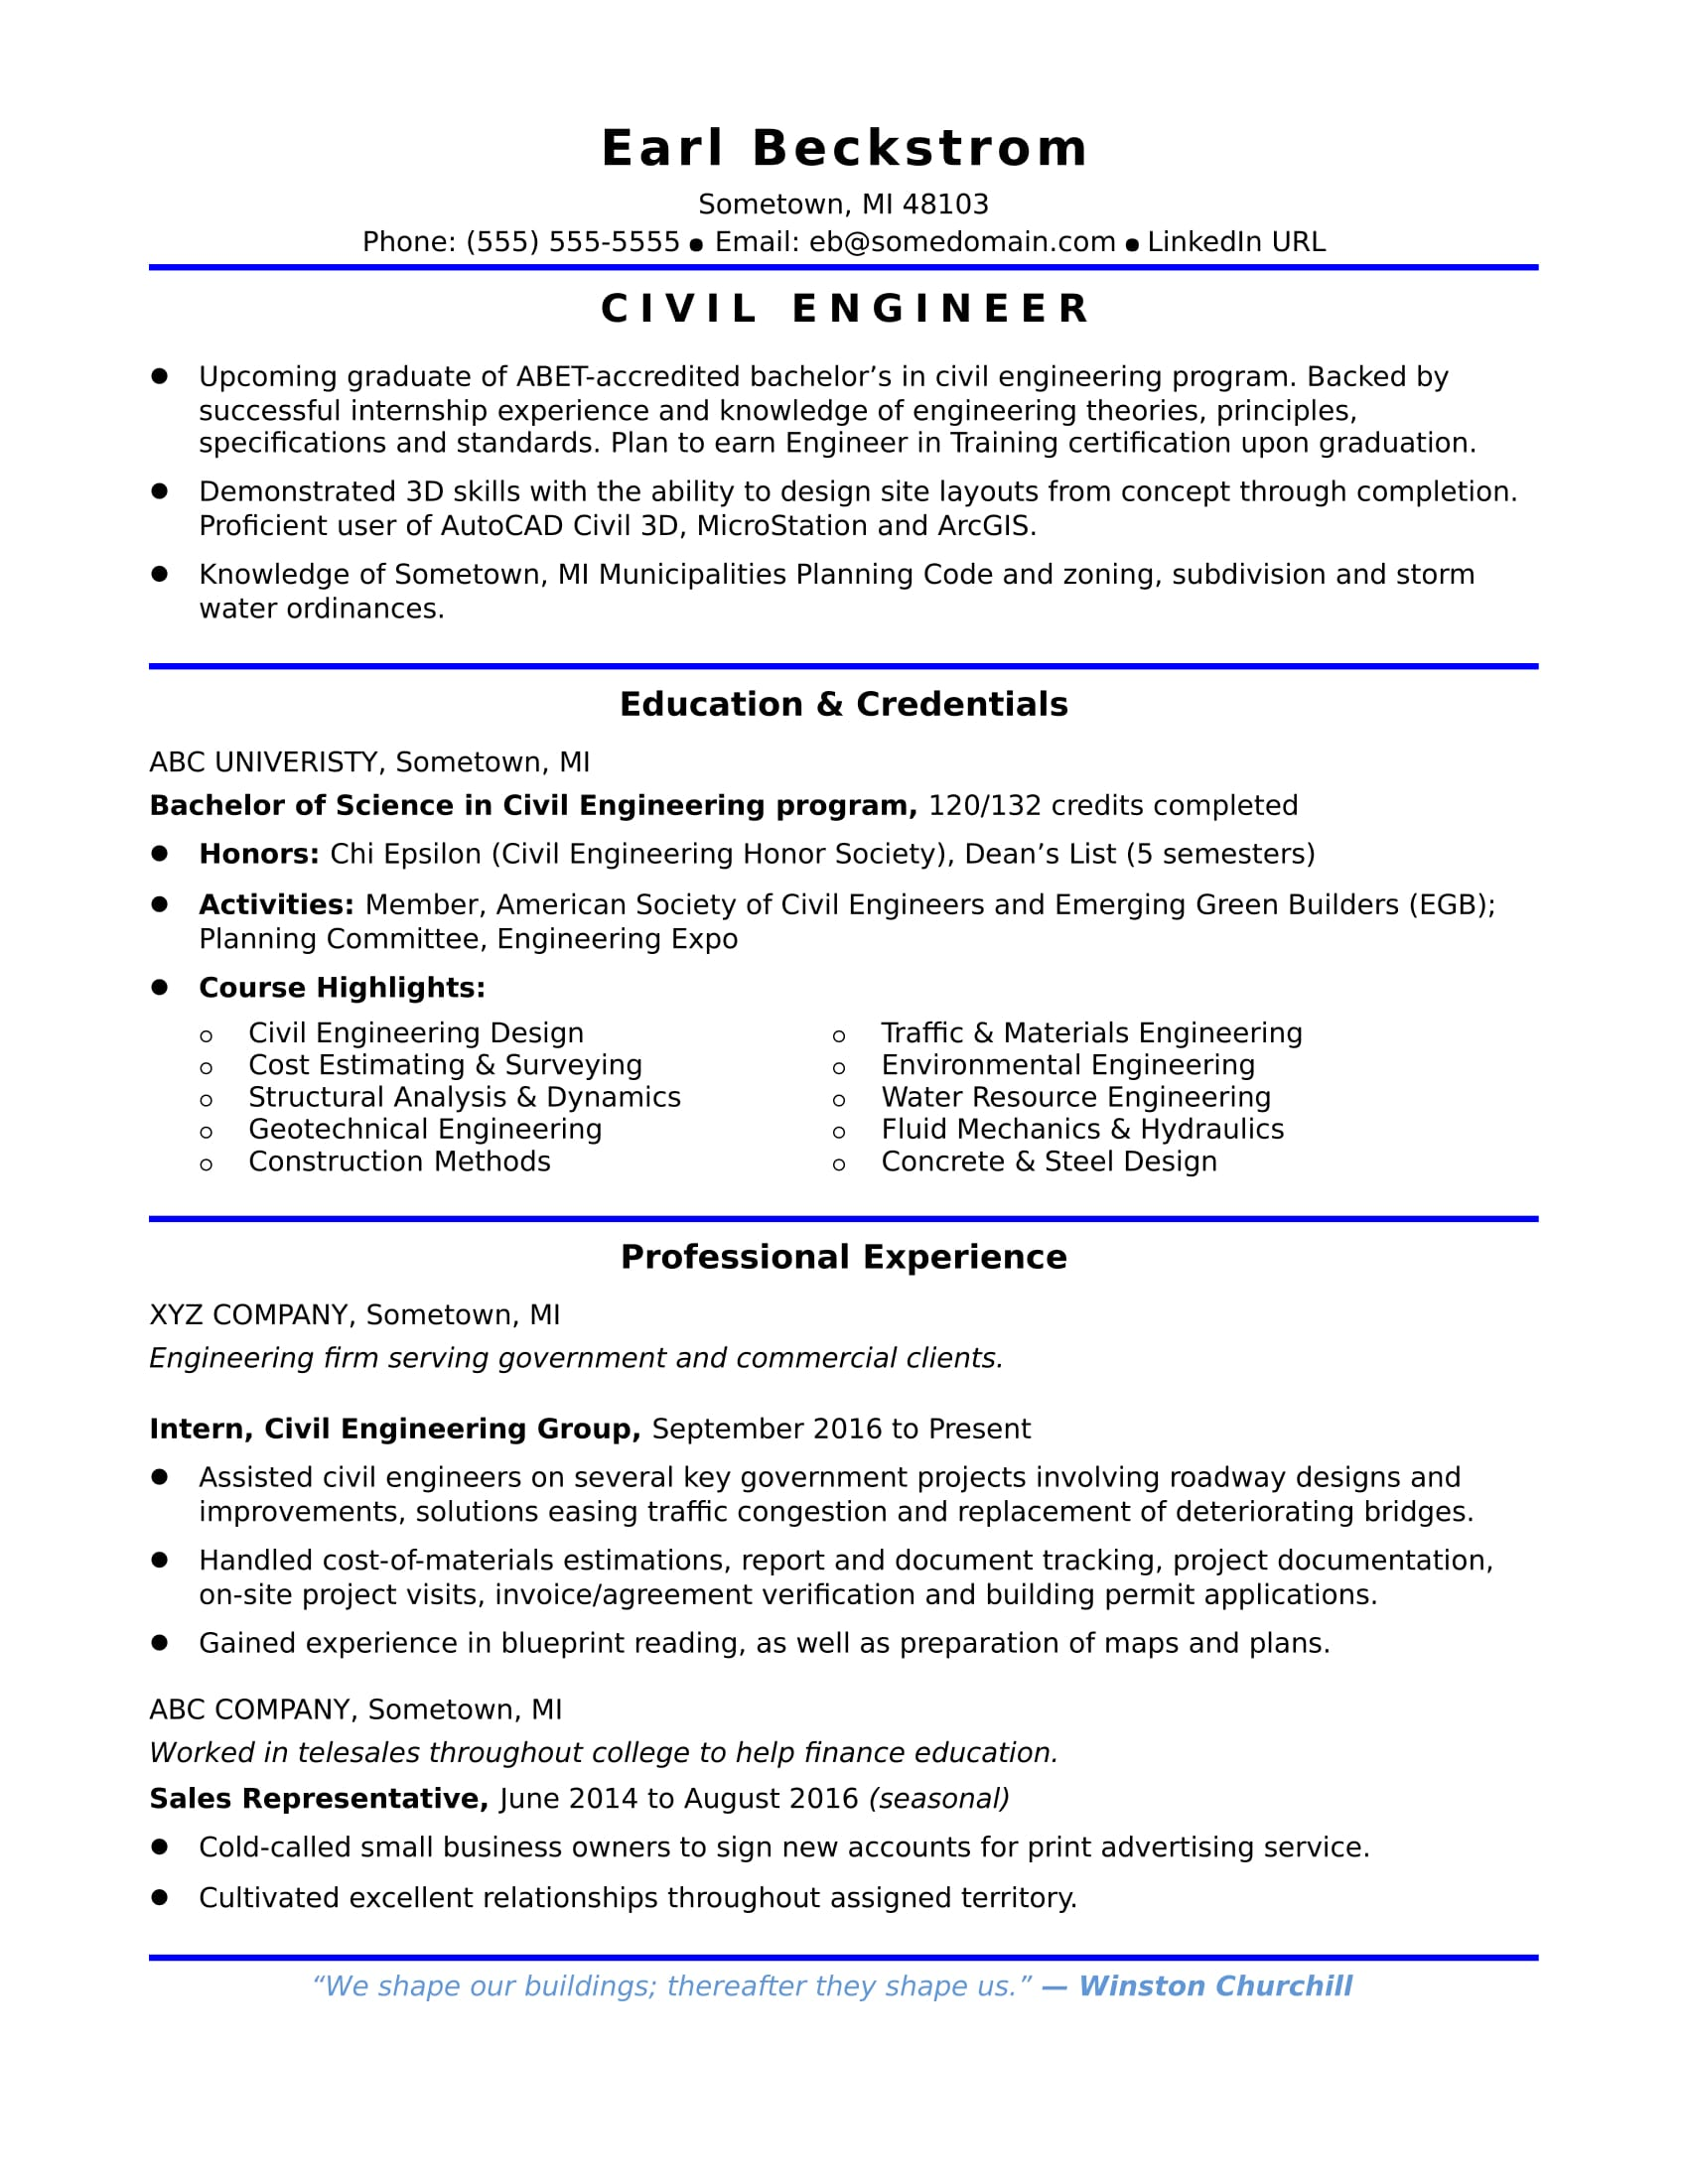 Sample Resume For An Entry Level Civil Engineer  Engineering Internship Resume